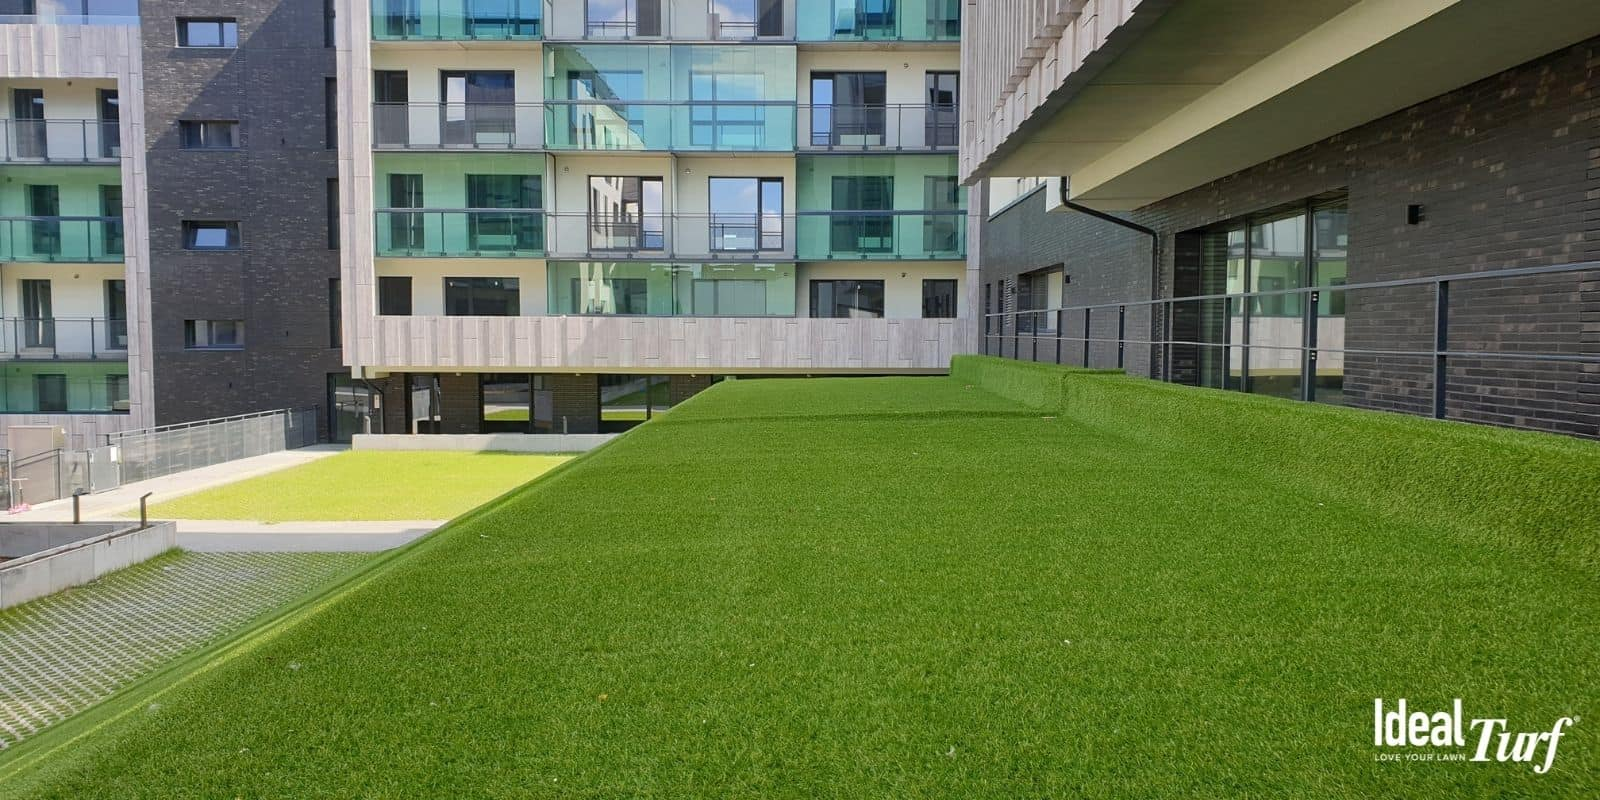 Wrapping Up Common Commercial Turf Applications